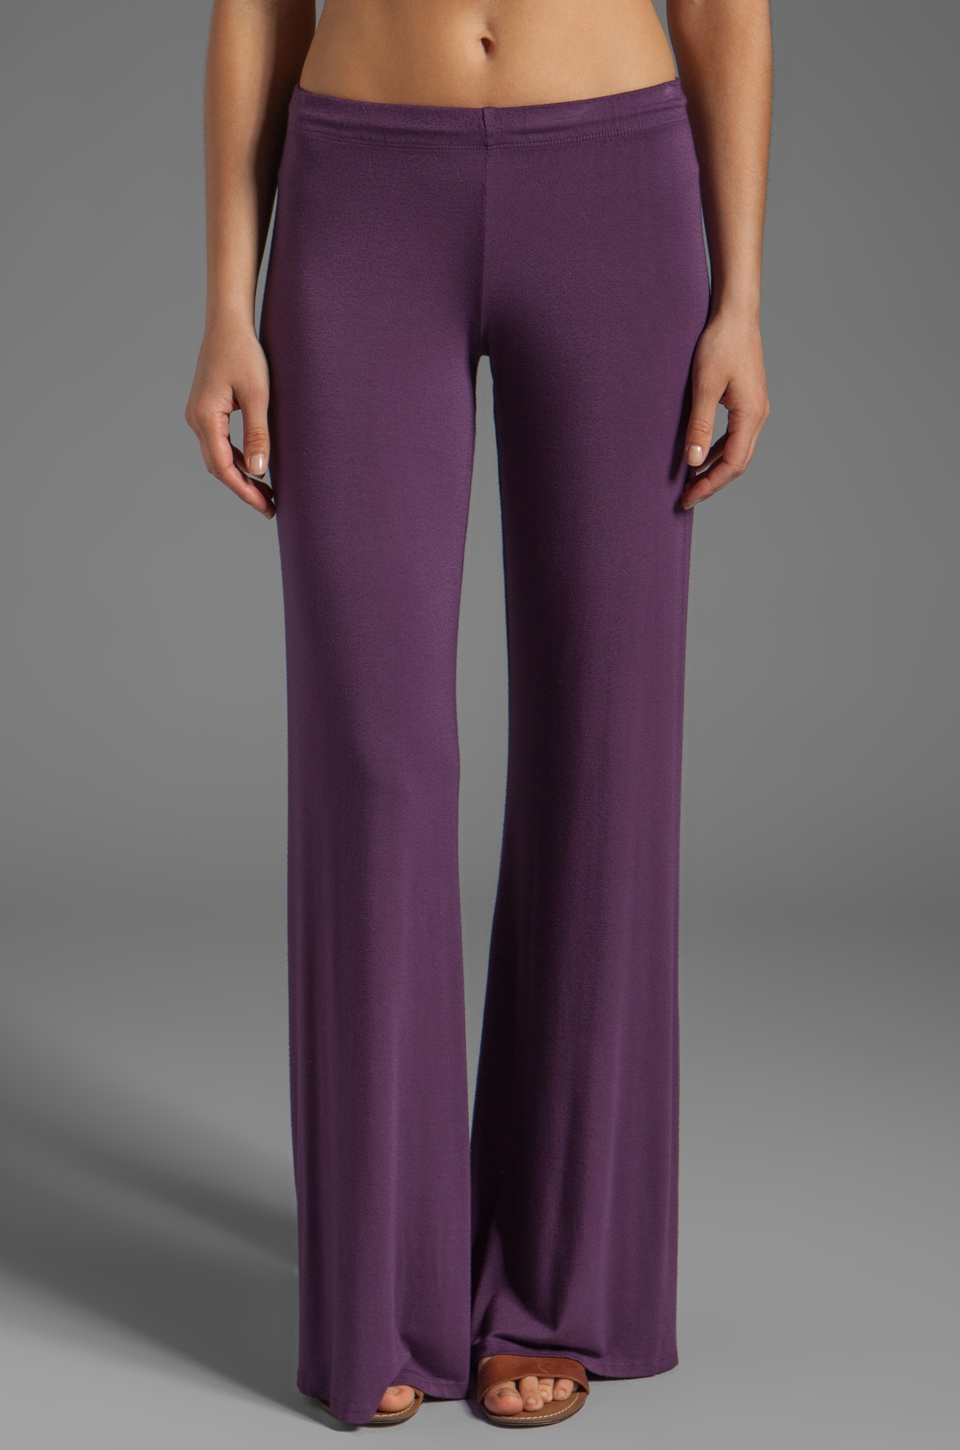 Michael Lauren Derby Wide Leg Pant in Grape